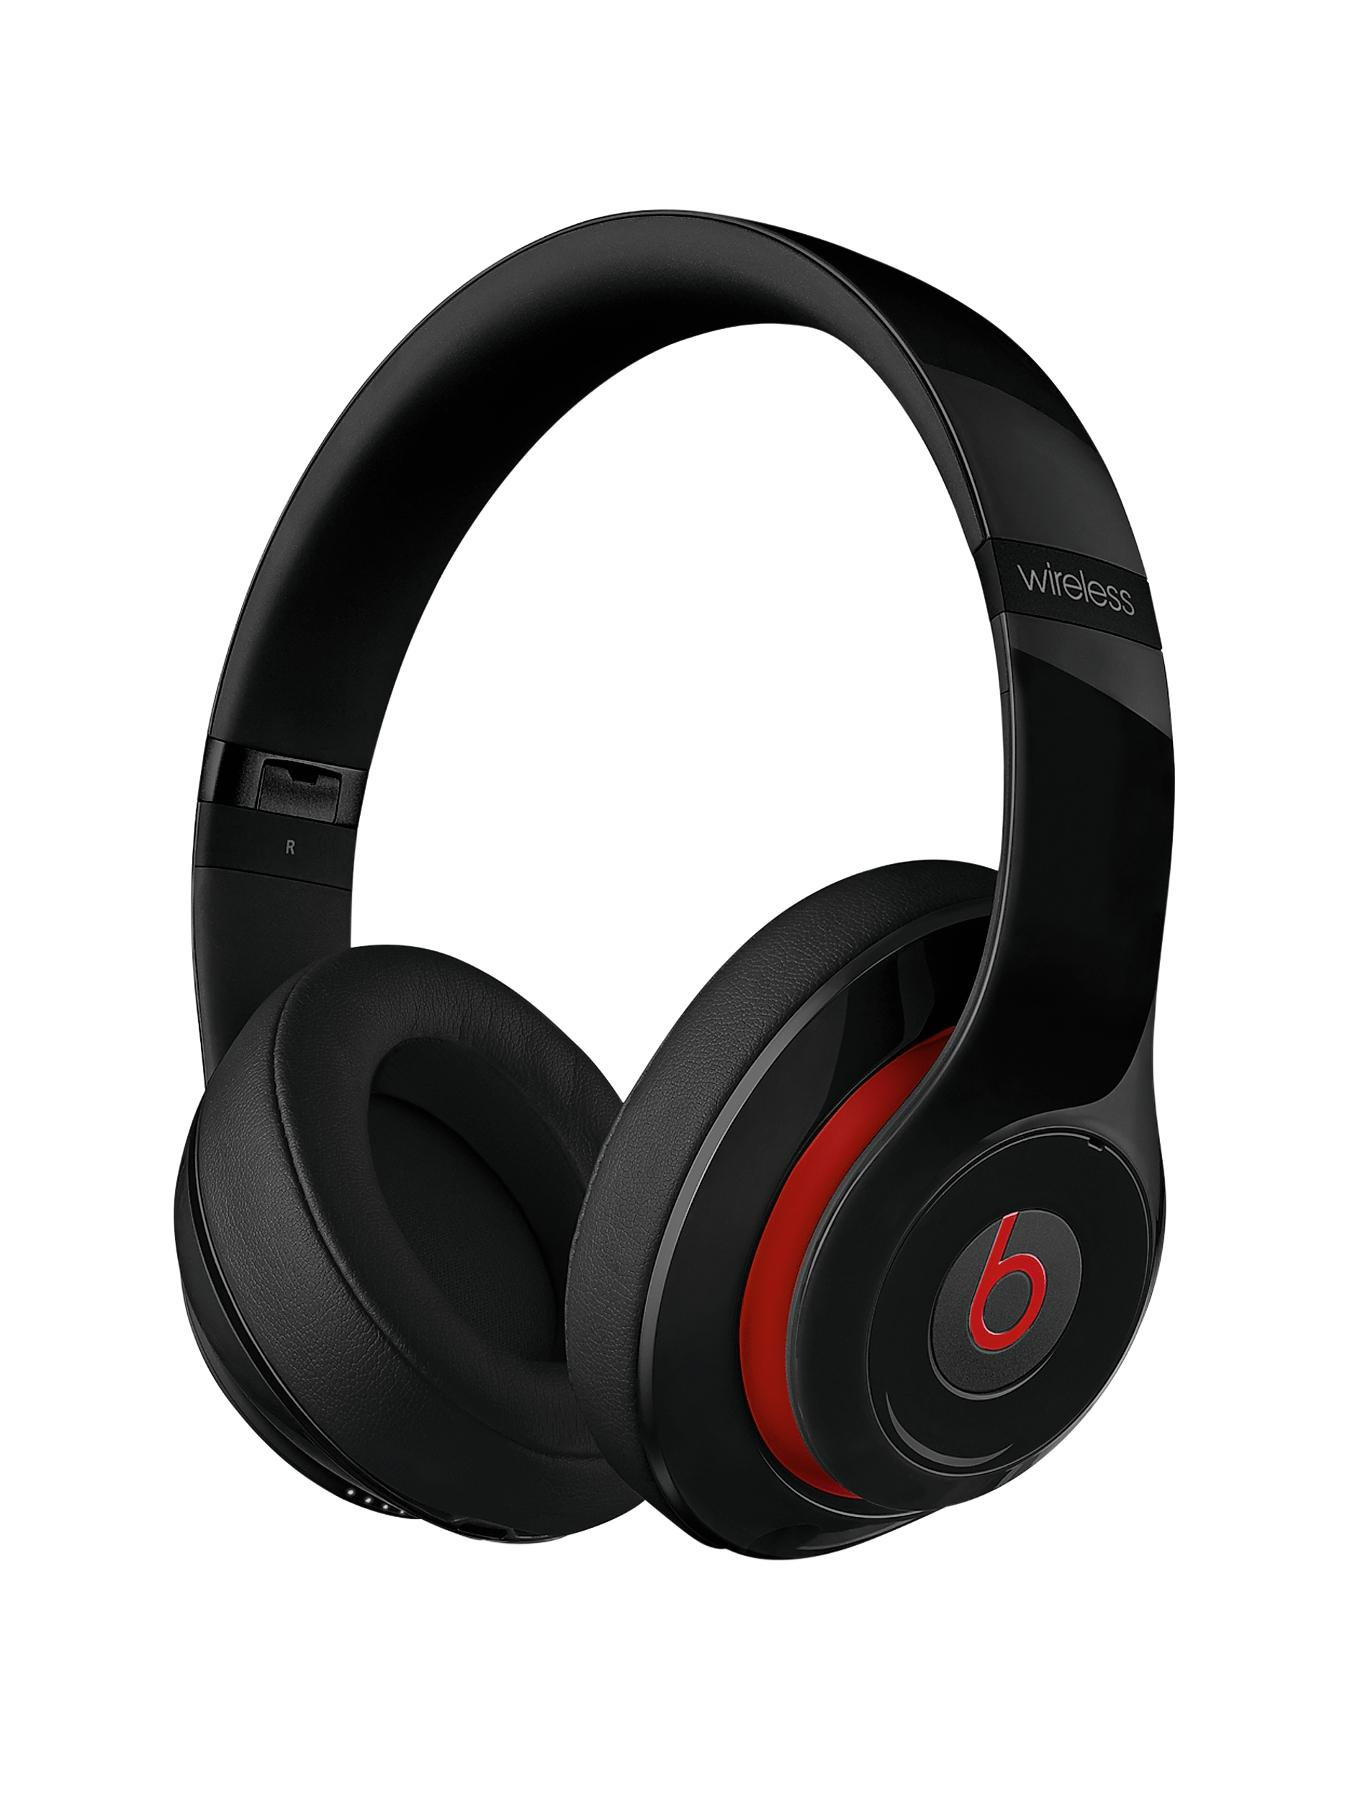 Studio Wireless Headphones - Black